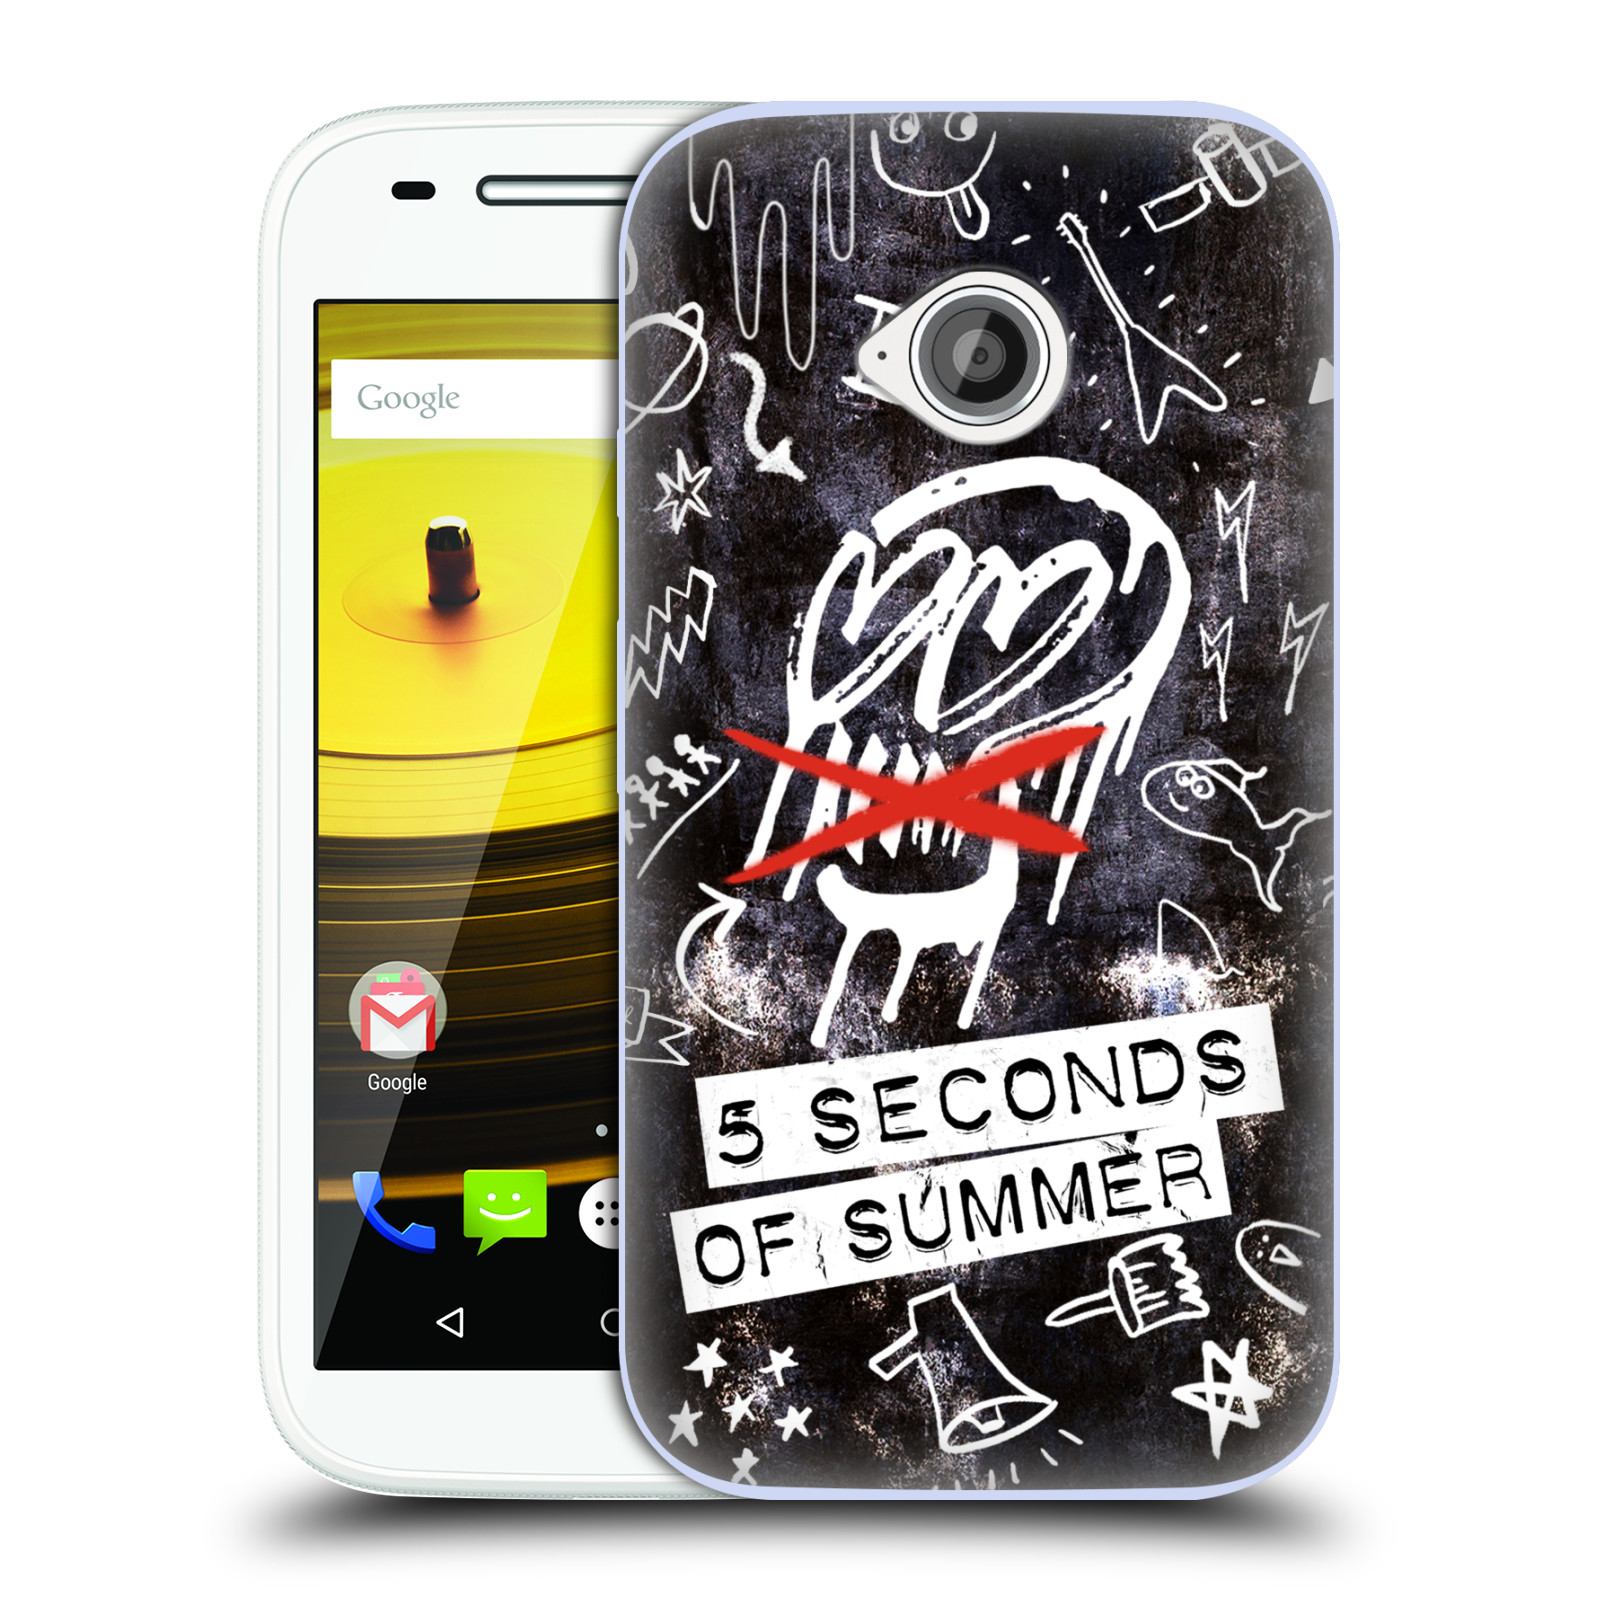 OFFICIAL 5 SECONDS OF SUMMER DOODLE ICONS SOFT GEL CASE FOR MOTOROLA PHONES